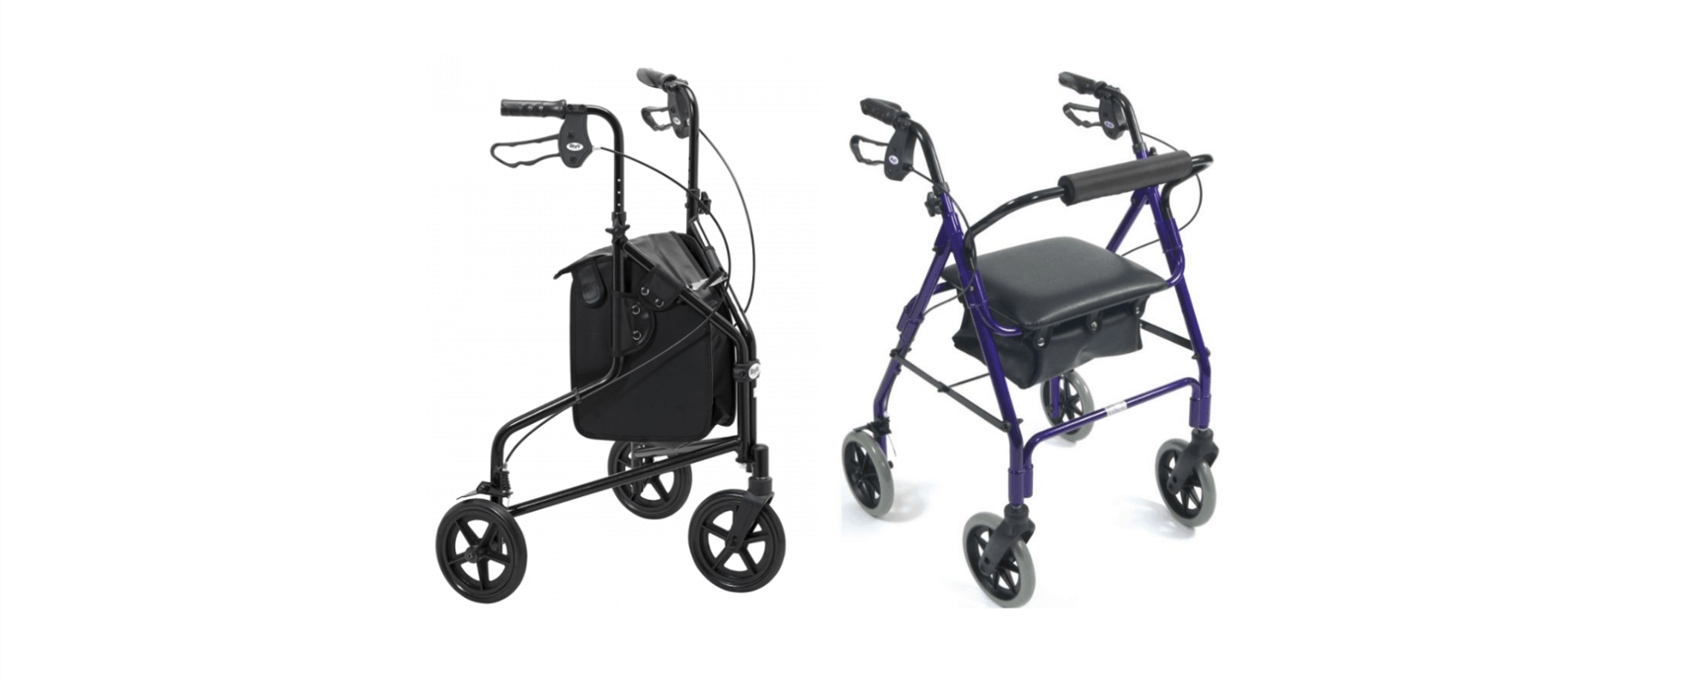 New walkers and rollators now in our shop